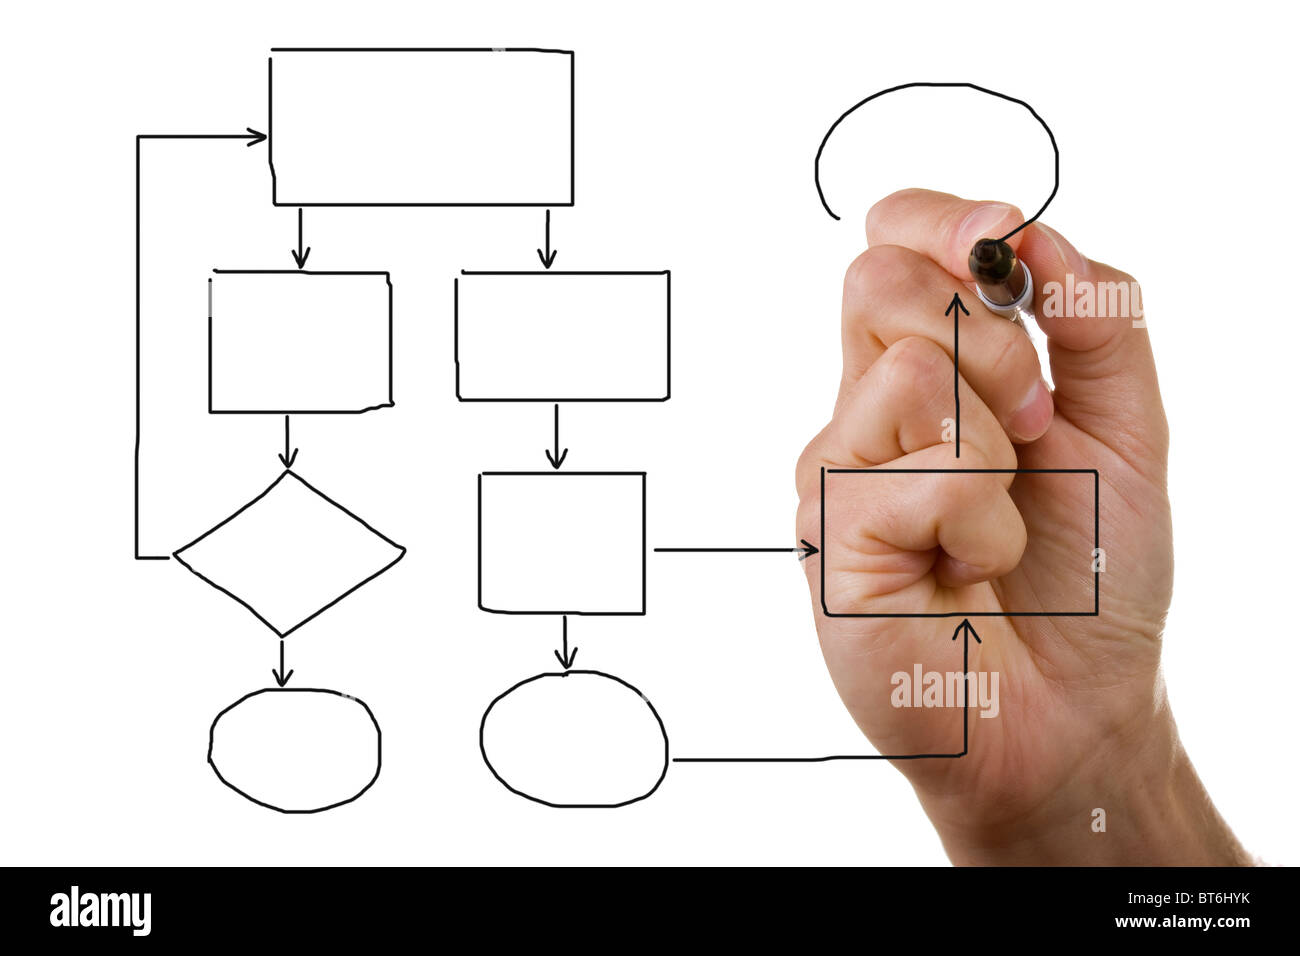 Hand drawing an empty diagram - Stock Image